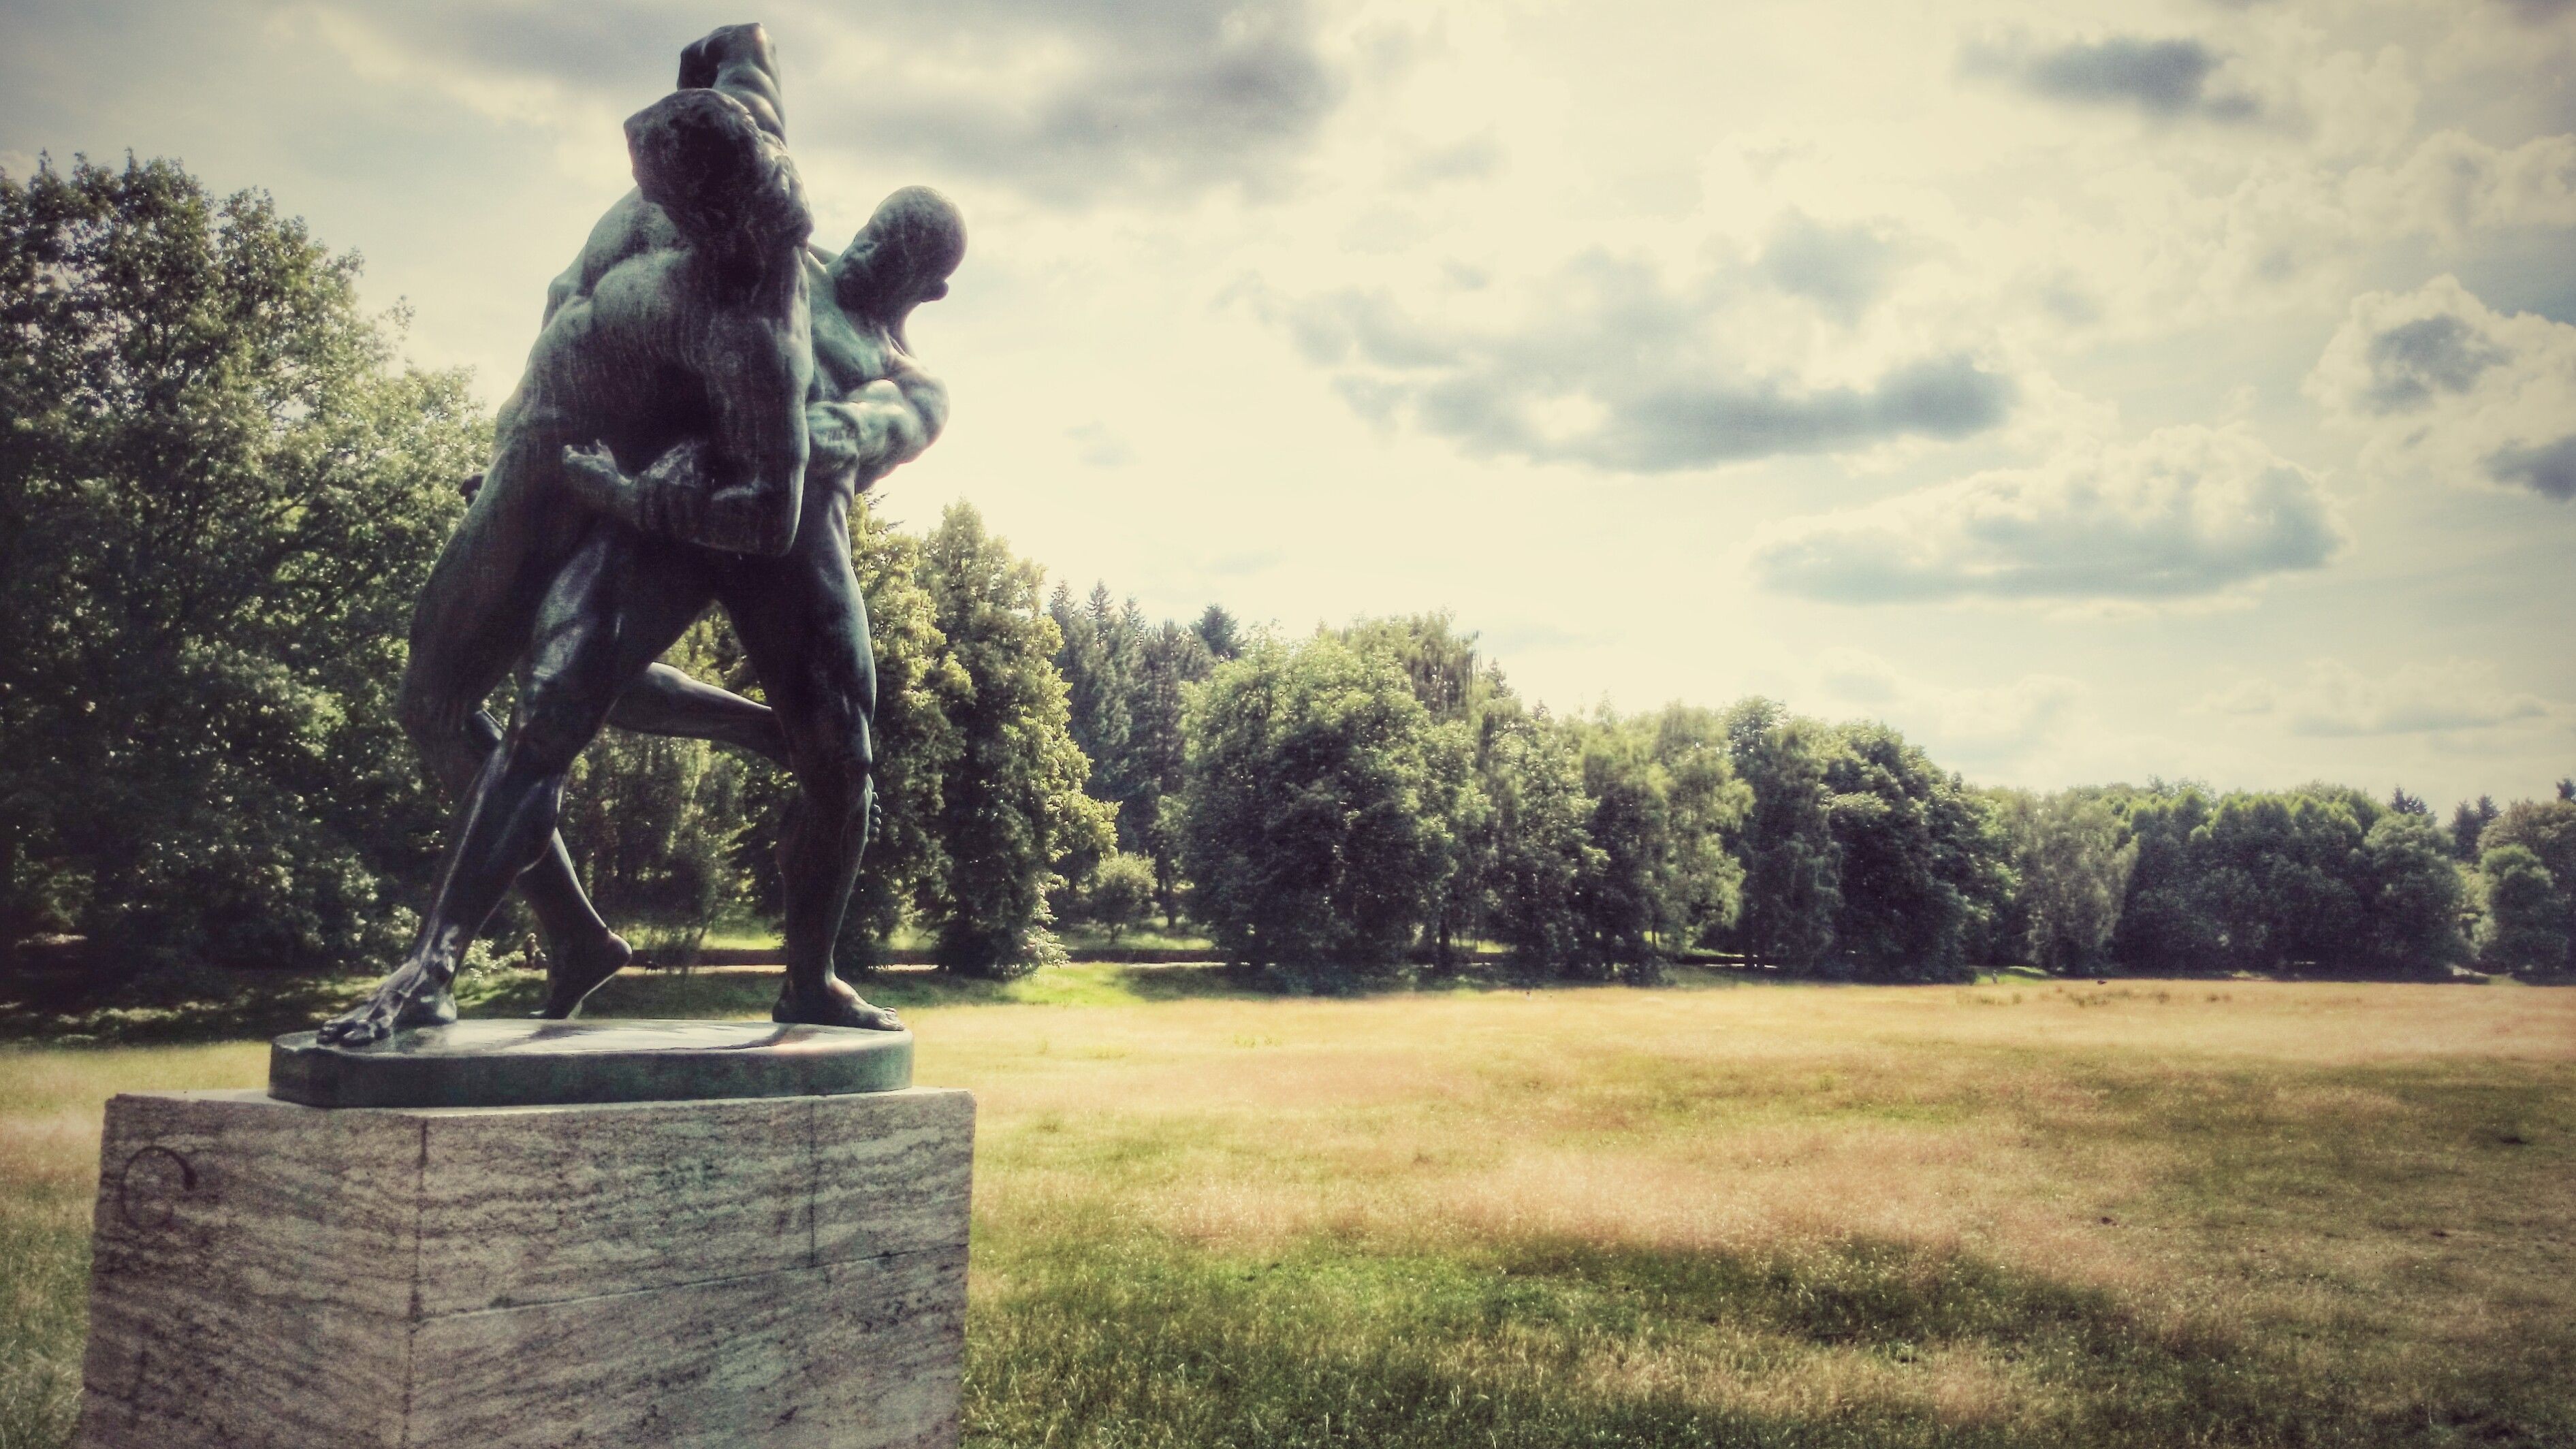 Nice wrestler statue in Volkspark Rehberge, Berlin. | OWN WORK ...